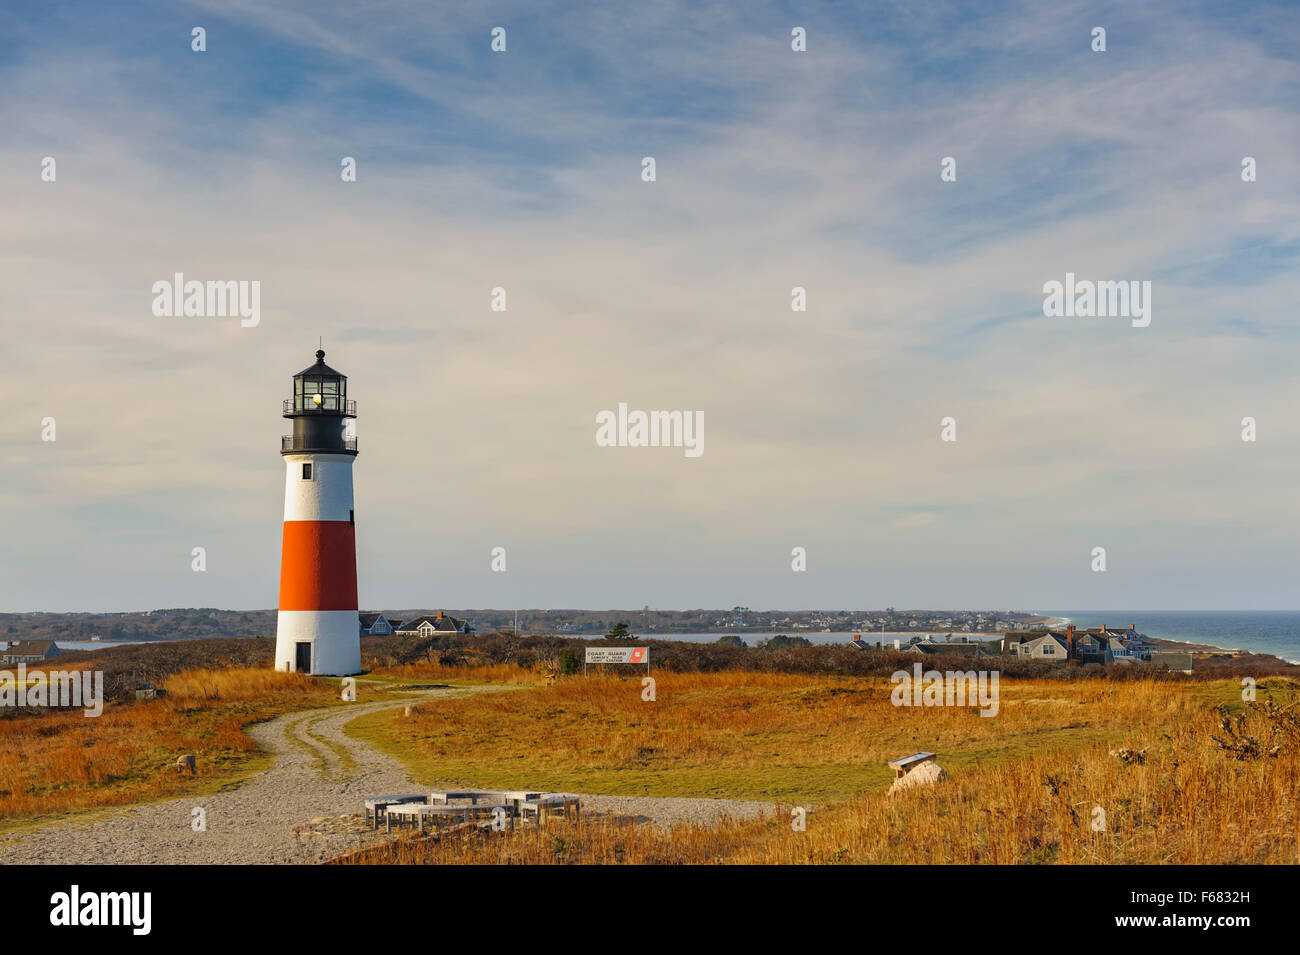 Sankaty Head Lighthouse Nantucket Massachusetts, built in 1850, sweeping view of the moors and sea in autumn fall Stock Photo